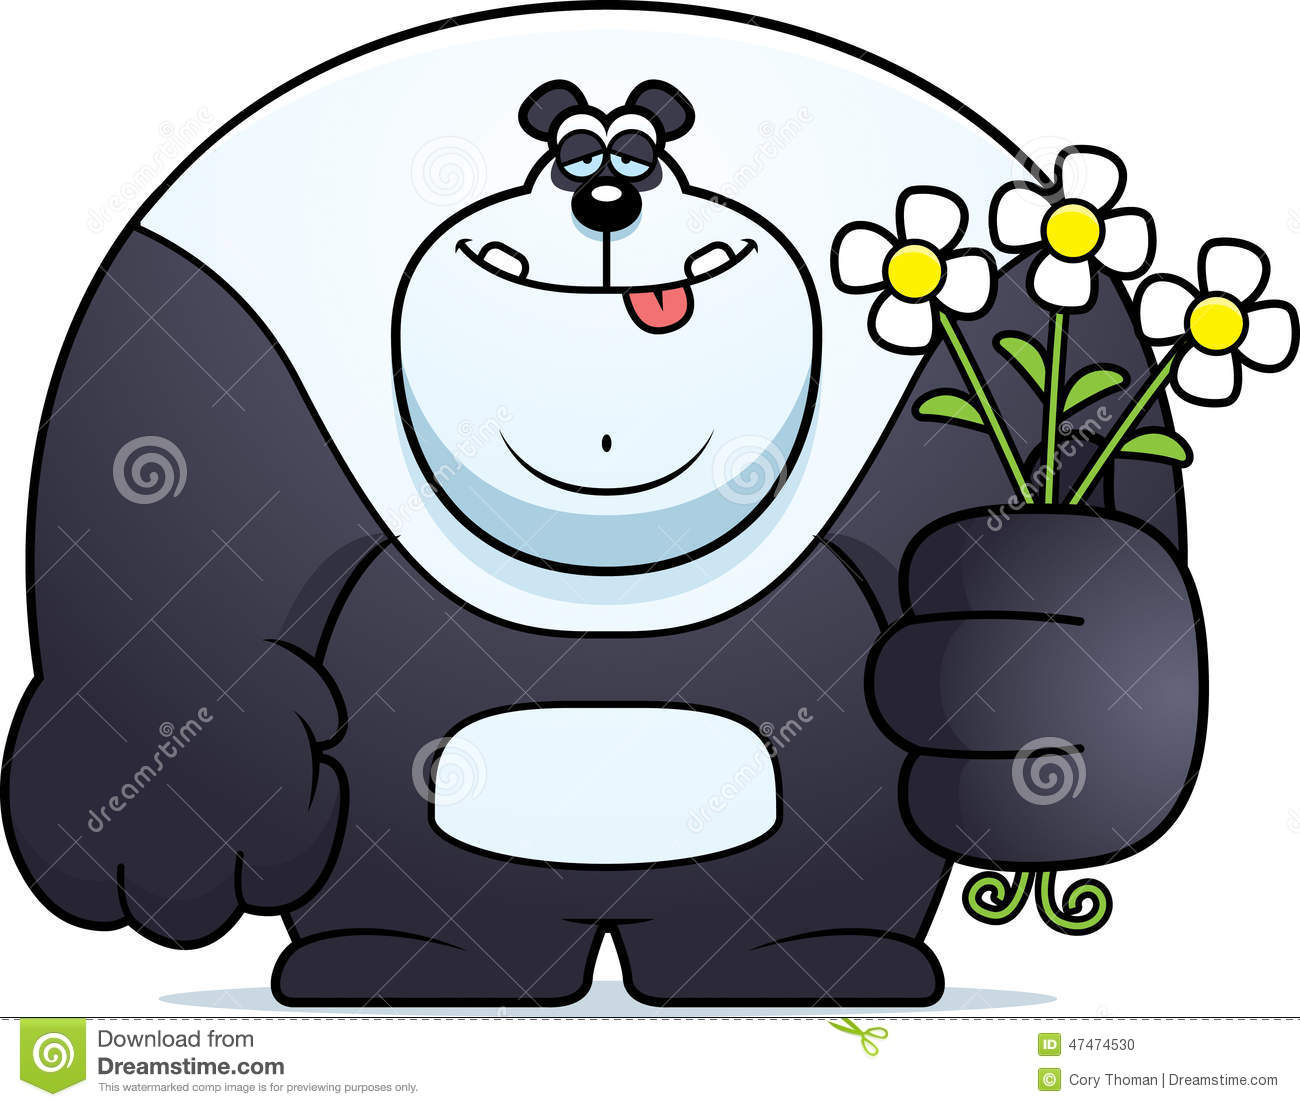 panda bear diagram wiring diagrams for a half hot switched outlet cartoon flowers stock vector illustration of